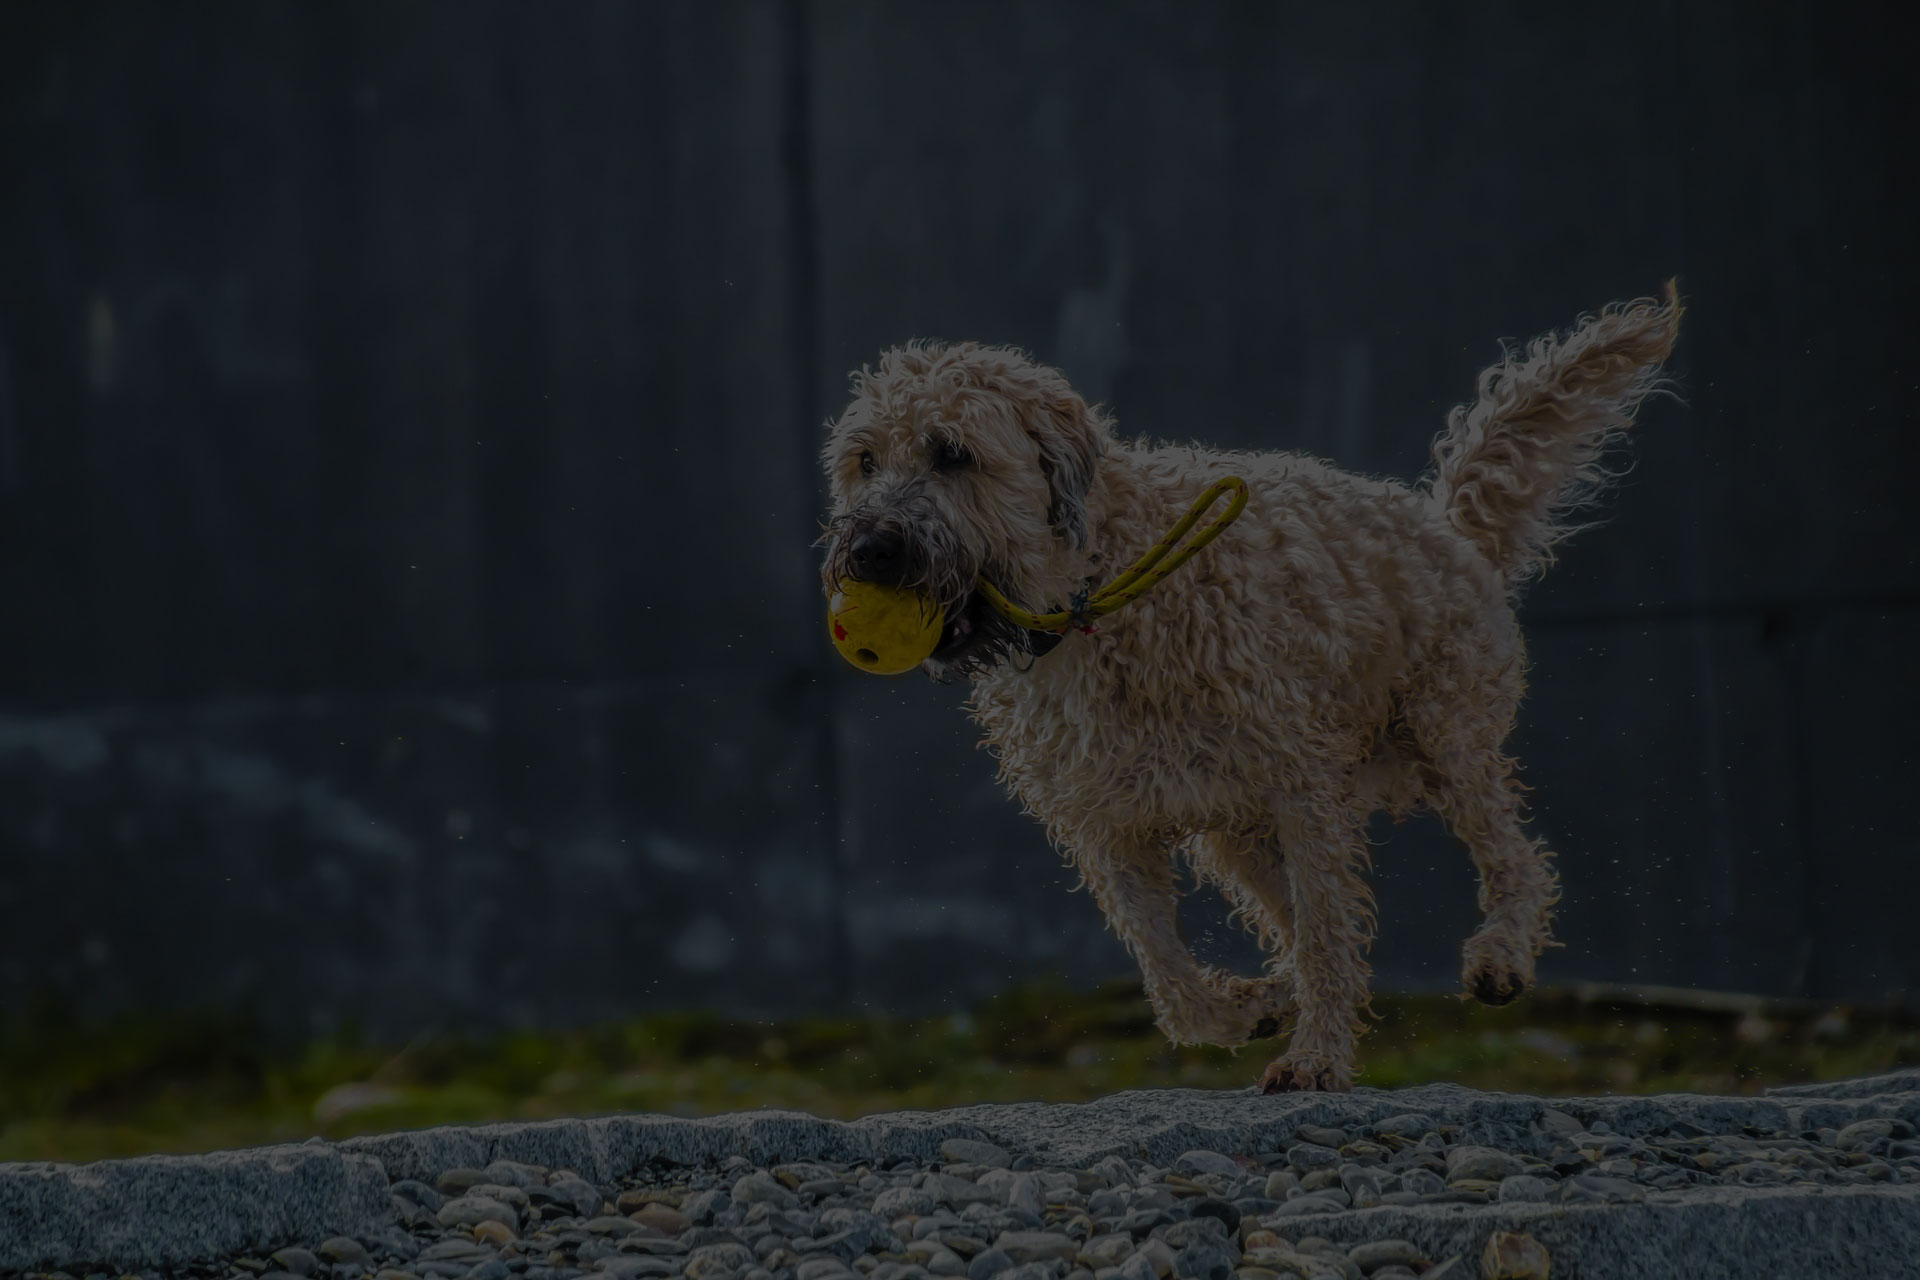 Dog playing with yellow ball